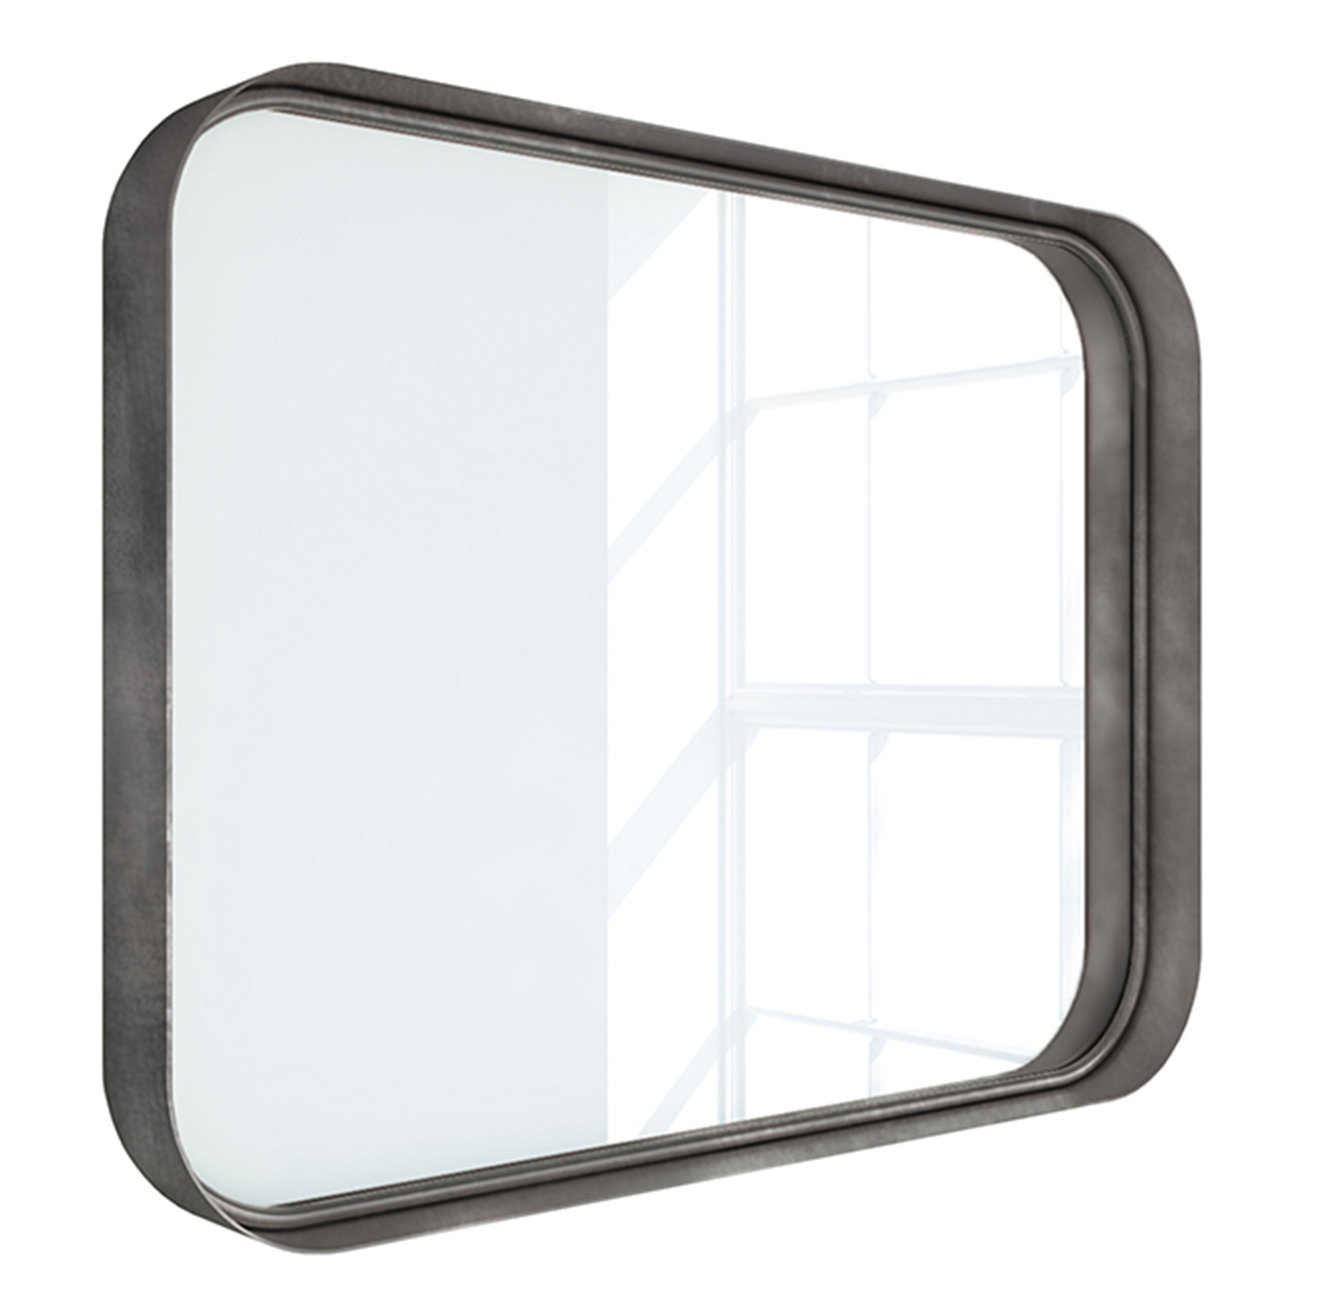 Theon Modern & Contemporary Accent Mirror Throughout Needville Modern & Contemporary Accent Mirrors (View 22 of 30)